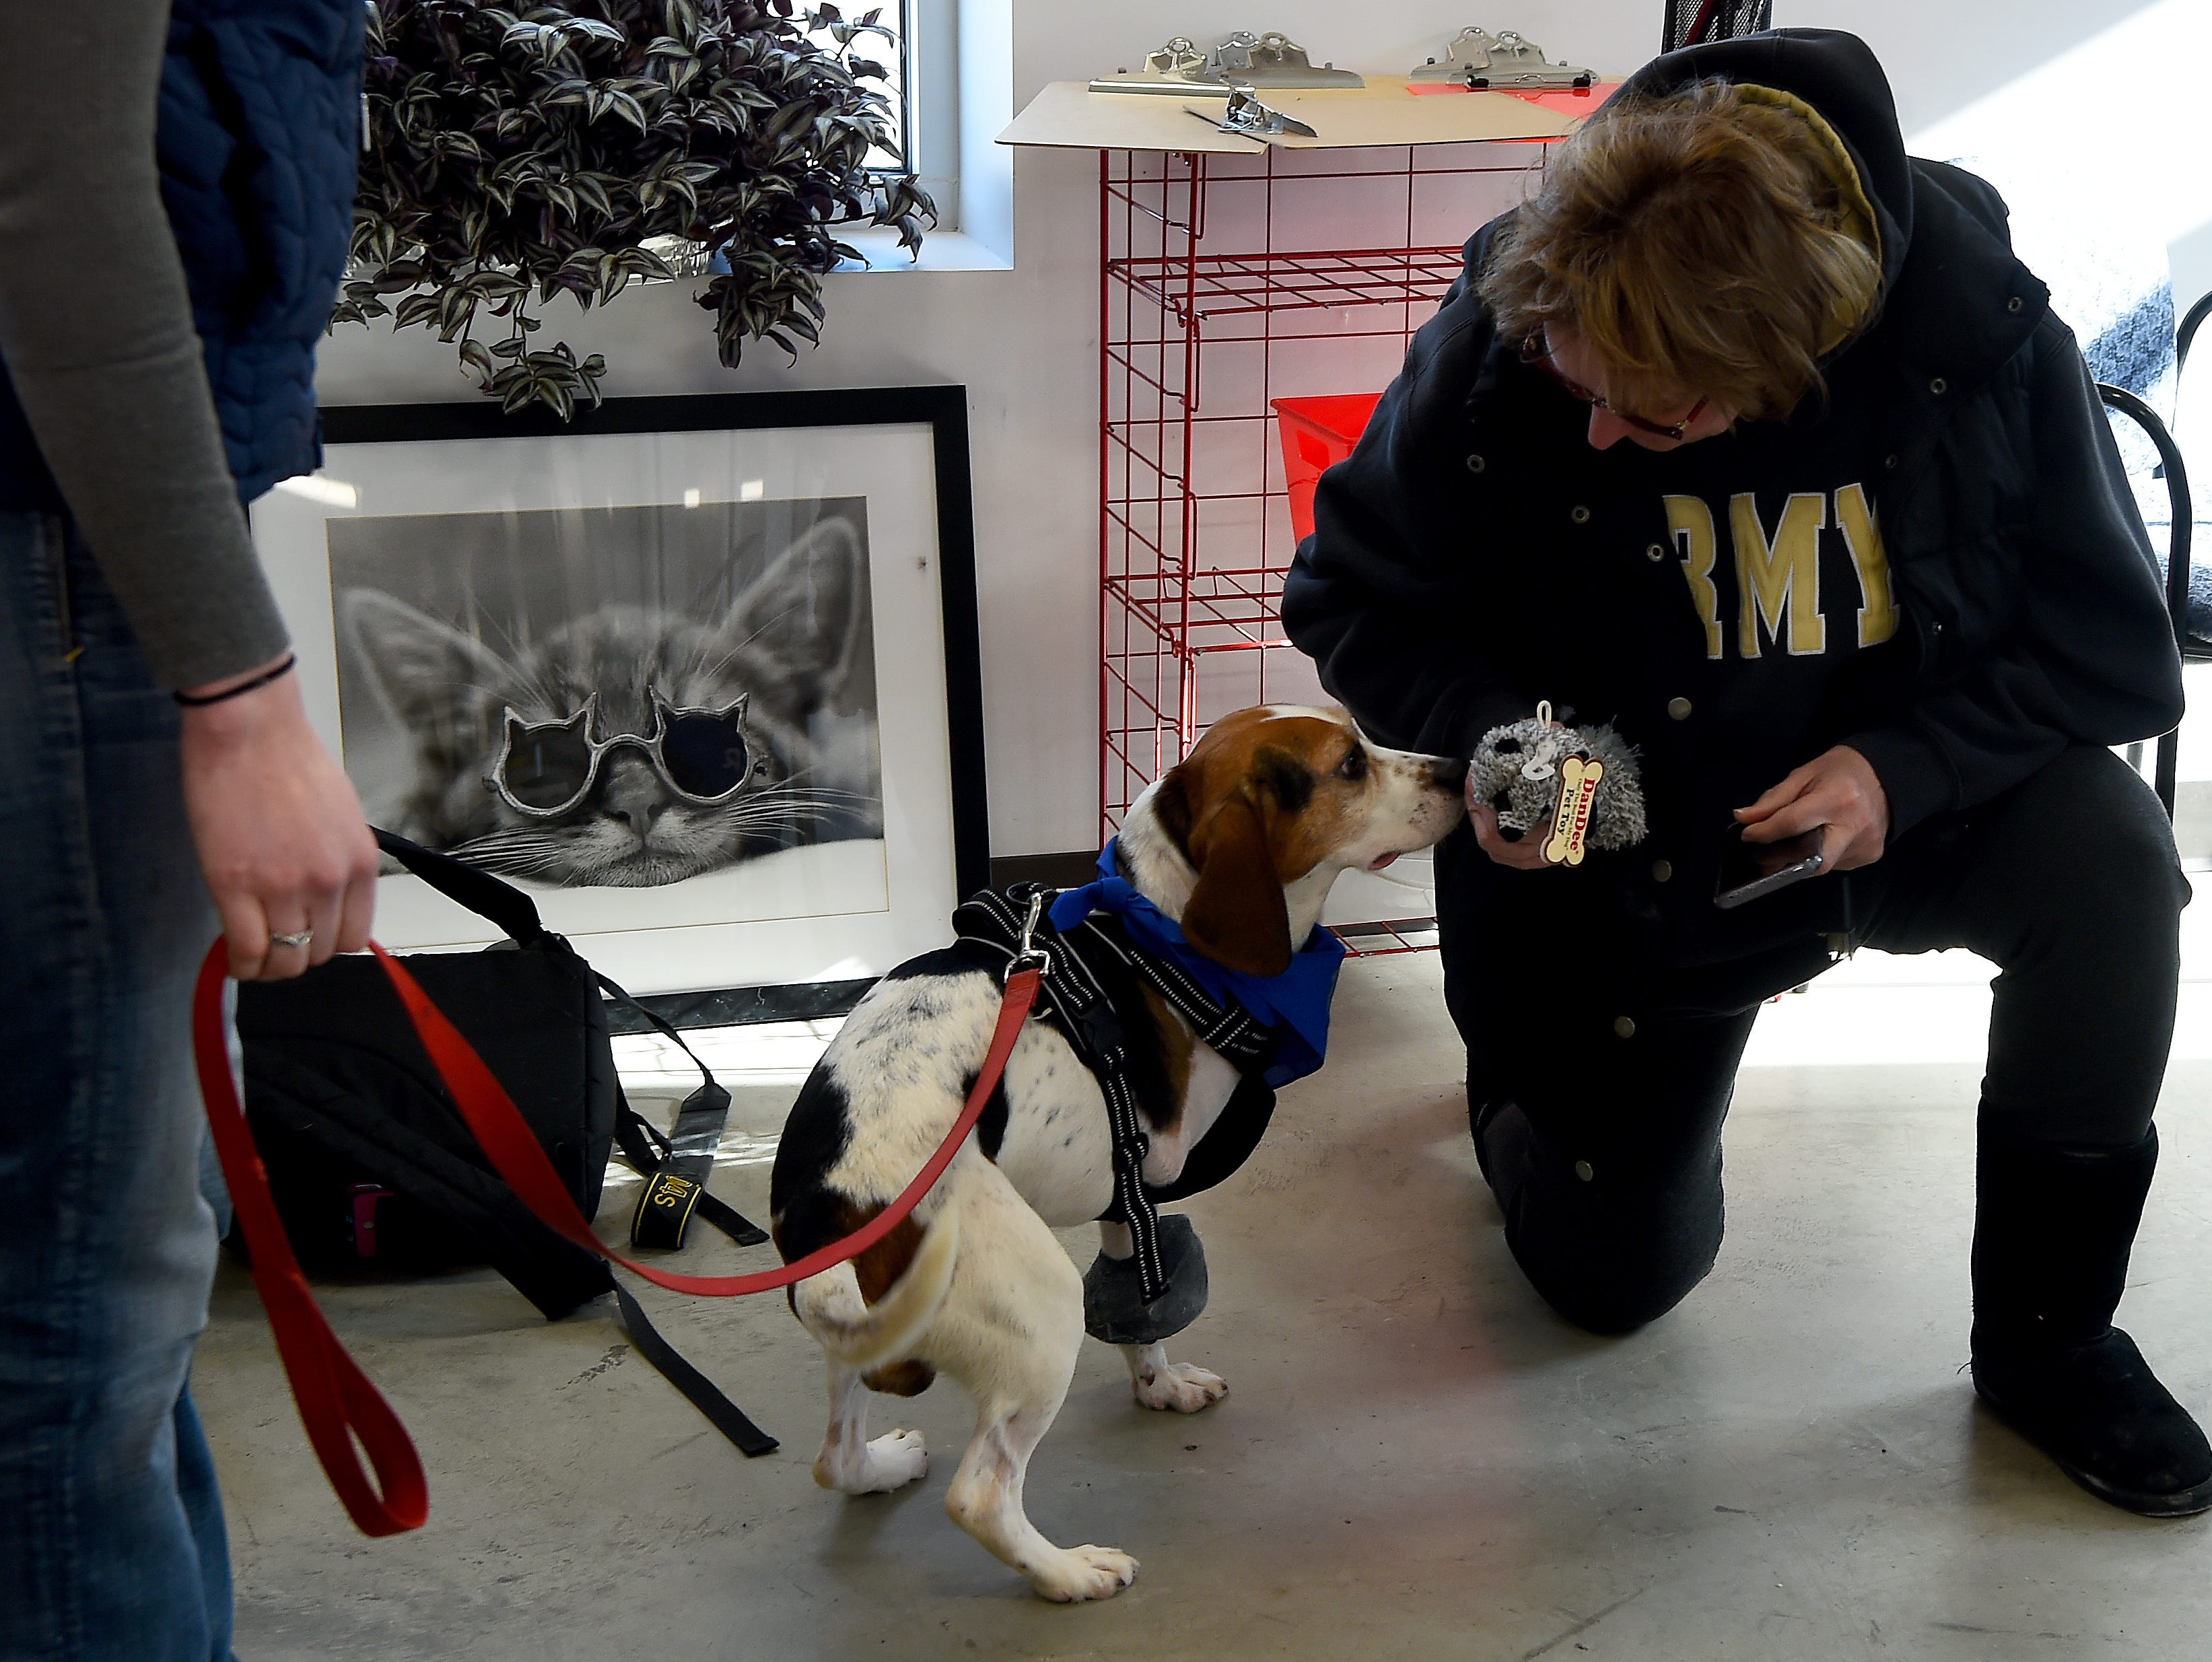 Trooper, one of two beagles thrown from a vehicle in December, with a visitor to the Broome County Humane Society. Trooper had to have one leg amputated due to the injury he sustained but is recovering well. January 11, 2019.